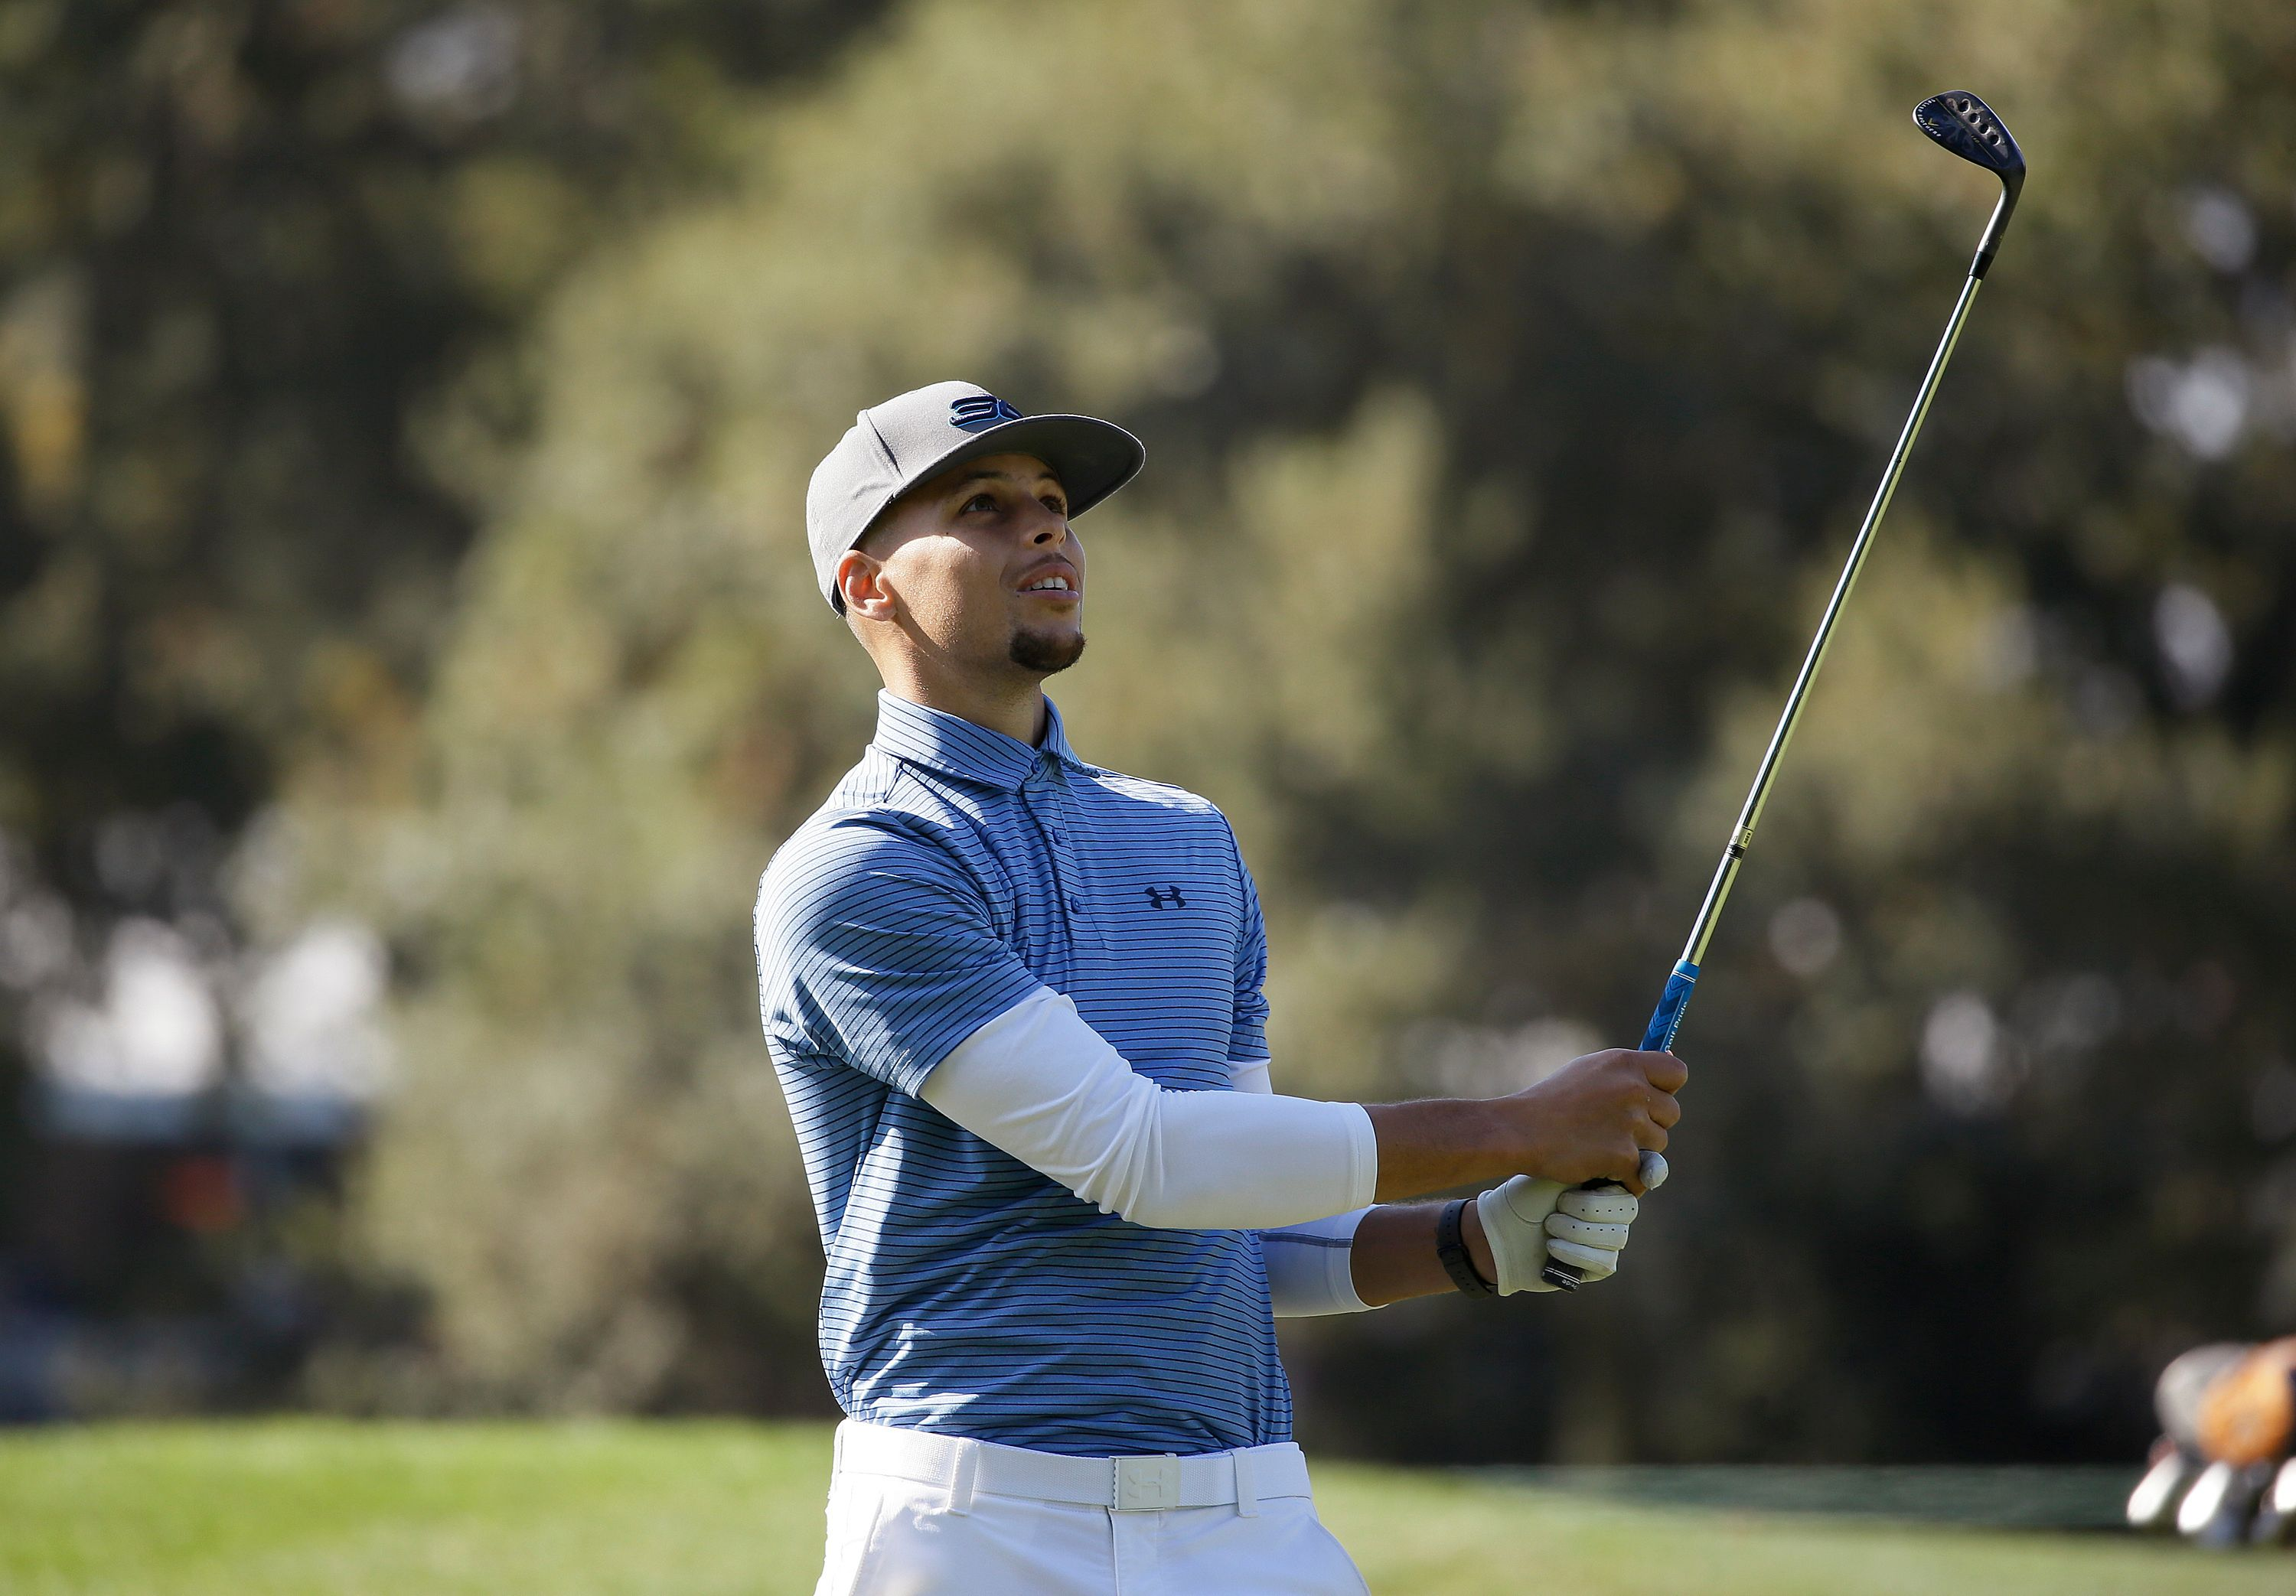 Steph Curry shoots 71 in Web.com Tour event